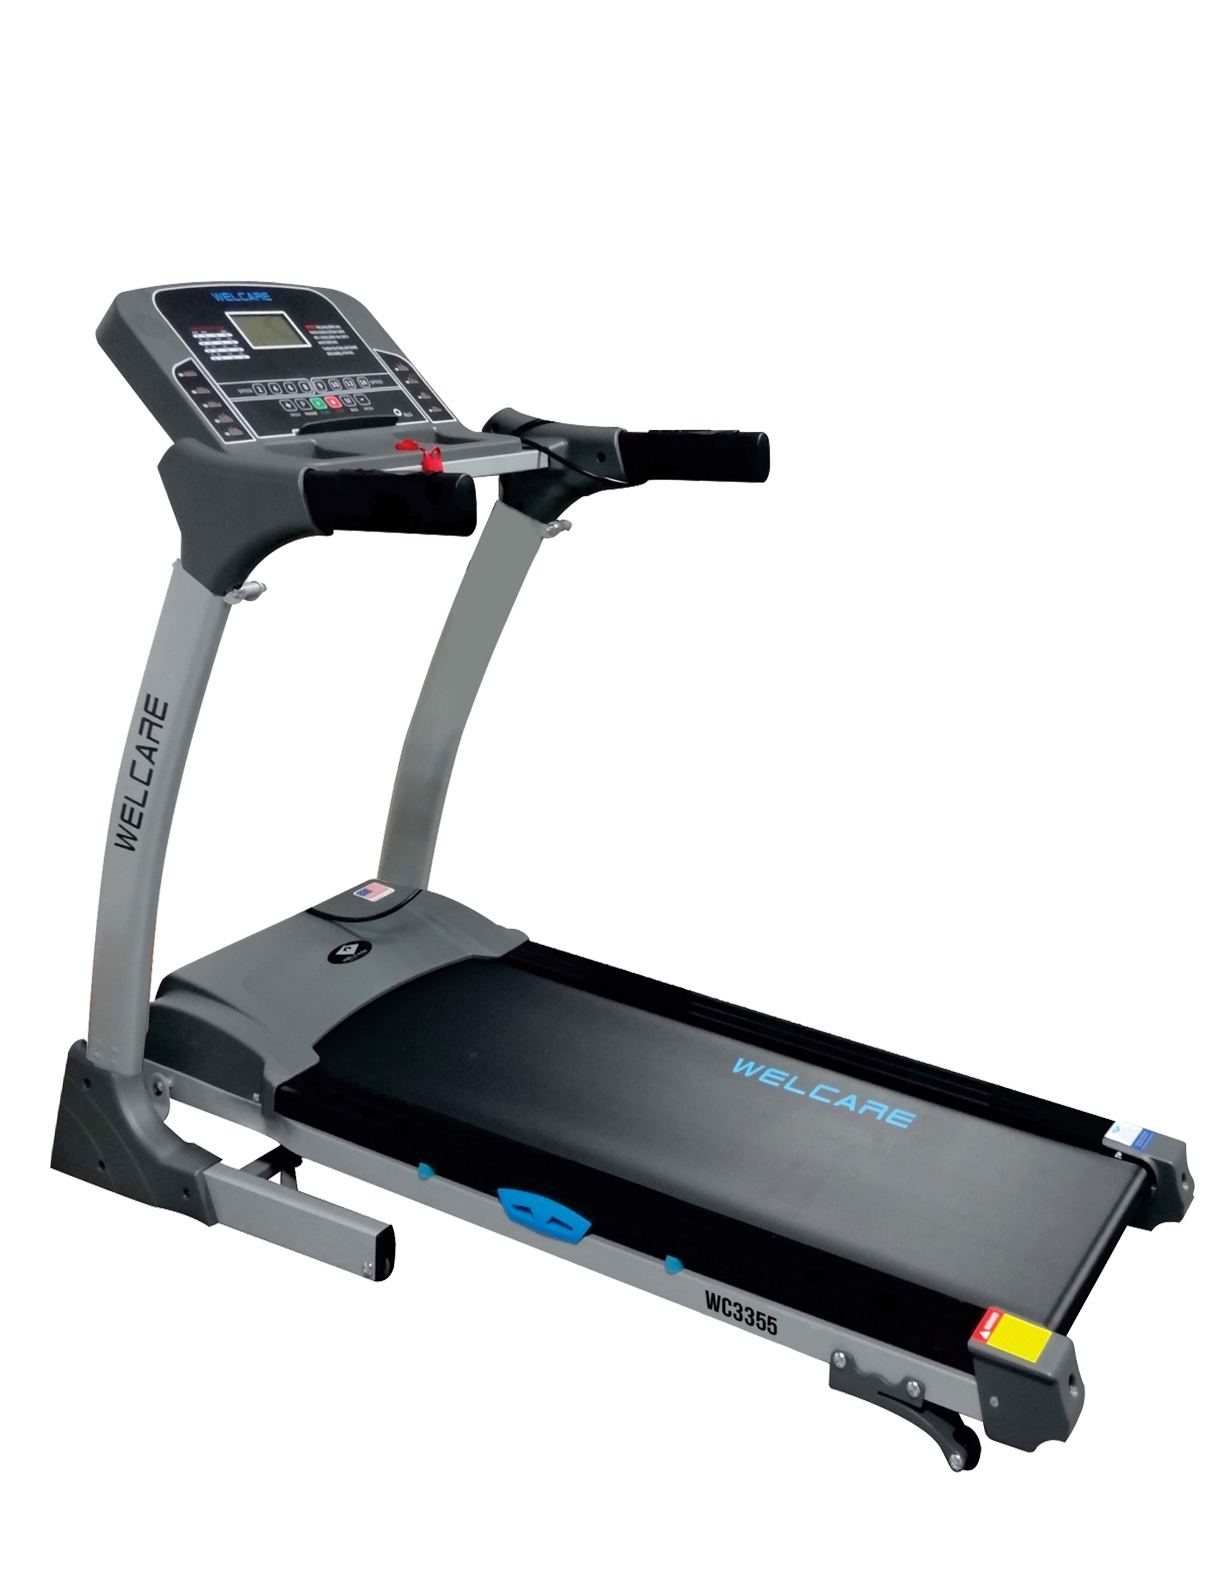 WC 3355-AC MOTORIZED TREADMILL